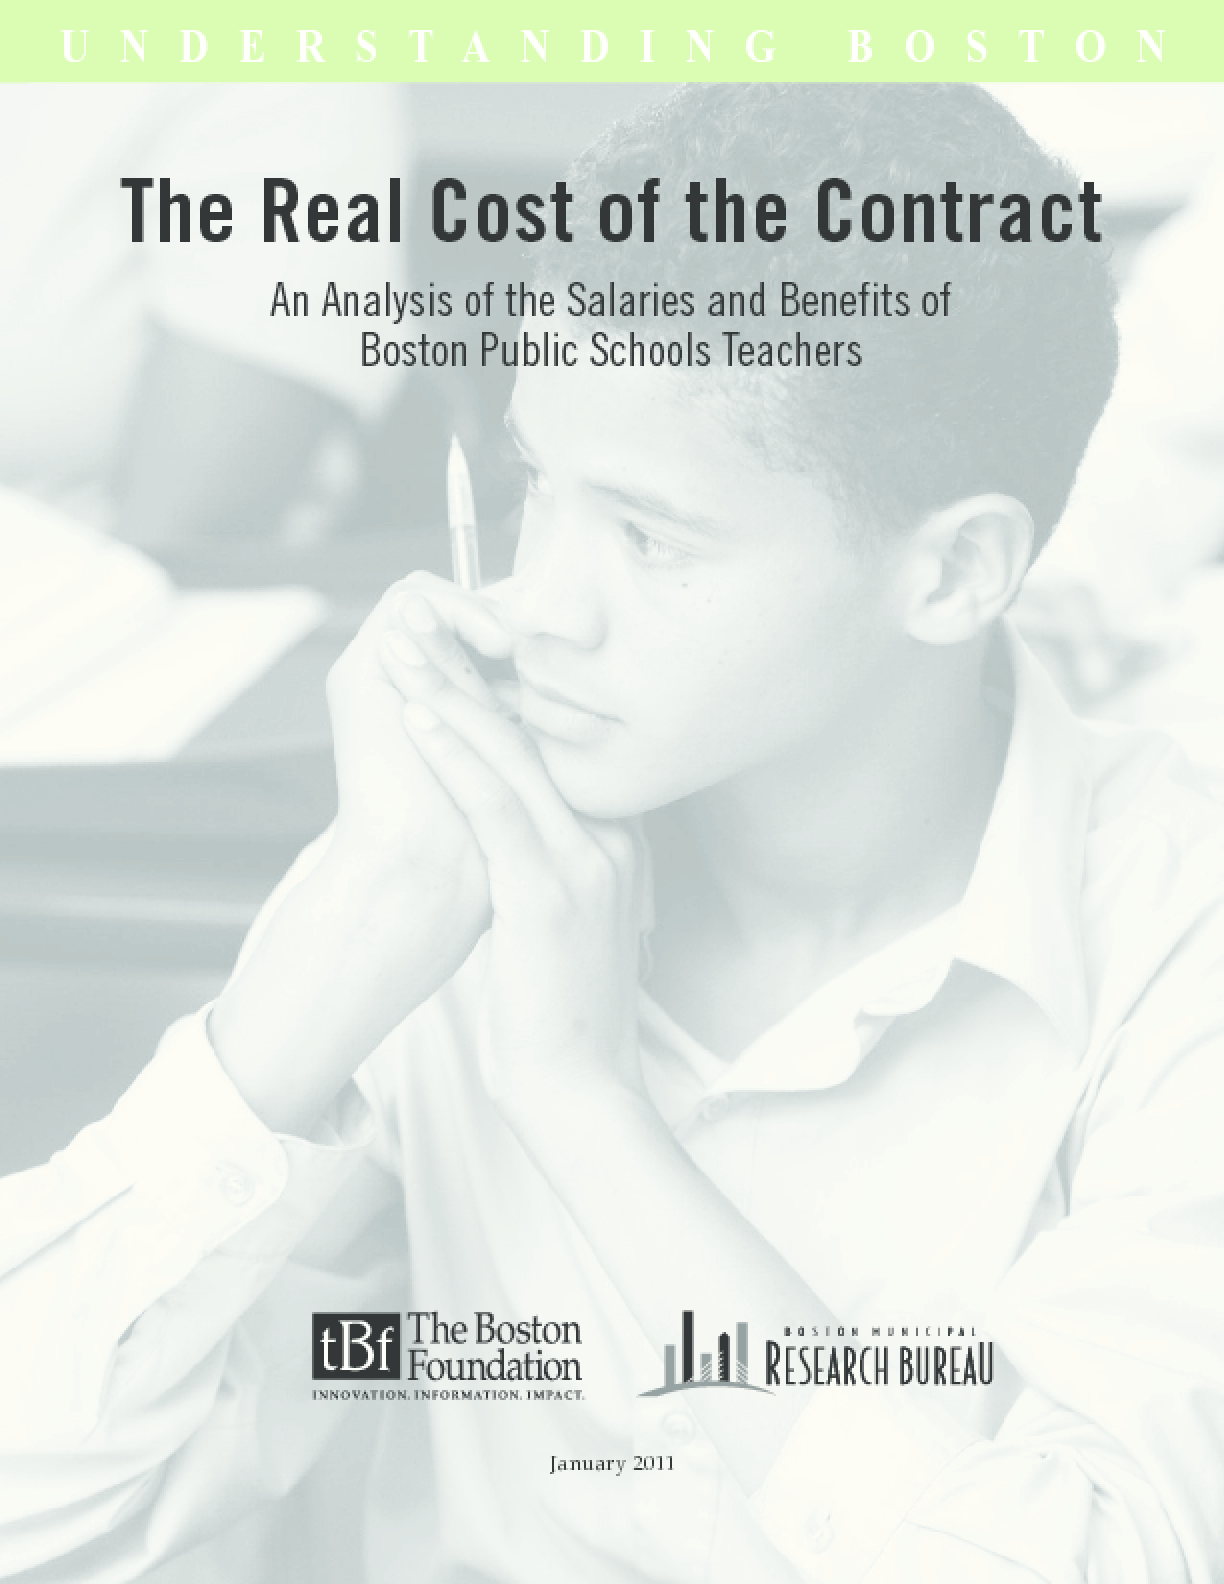 The Real Cost of the Contract: An Analysis of Salary & Benefits of Boston Public School Teachers